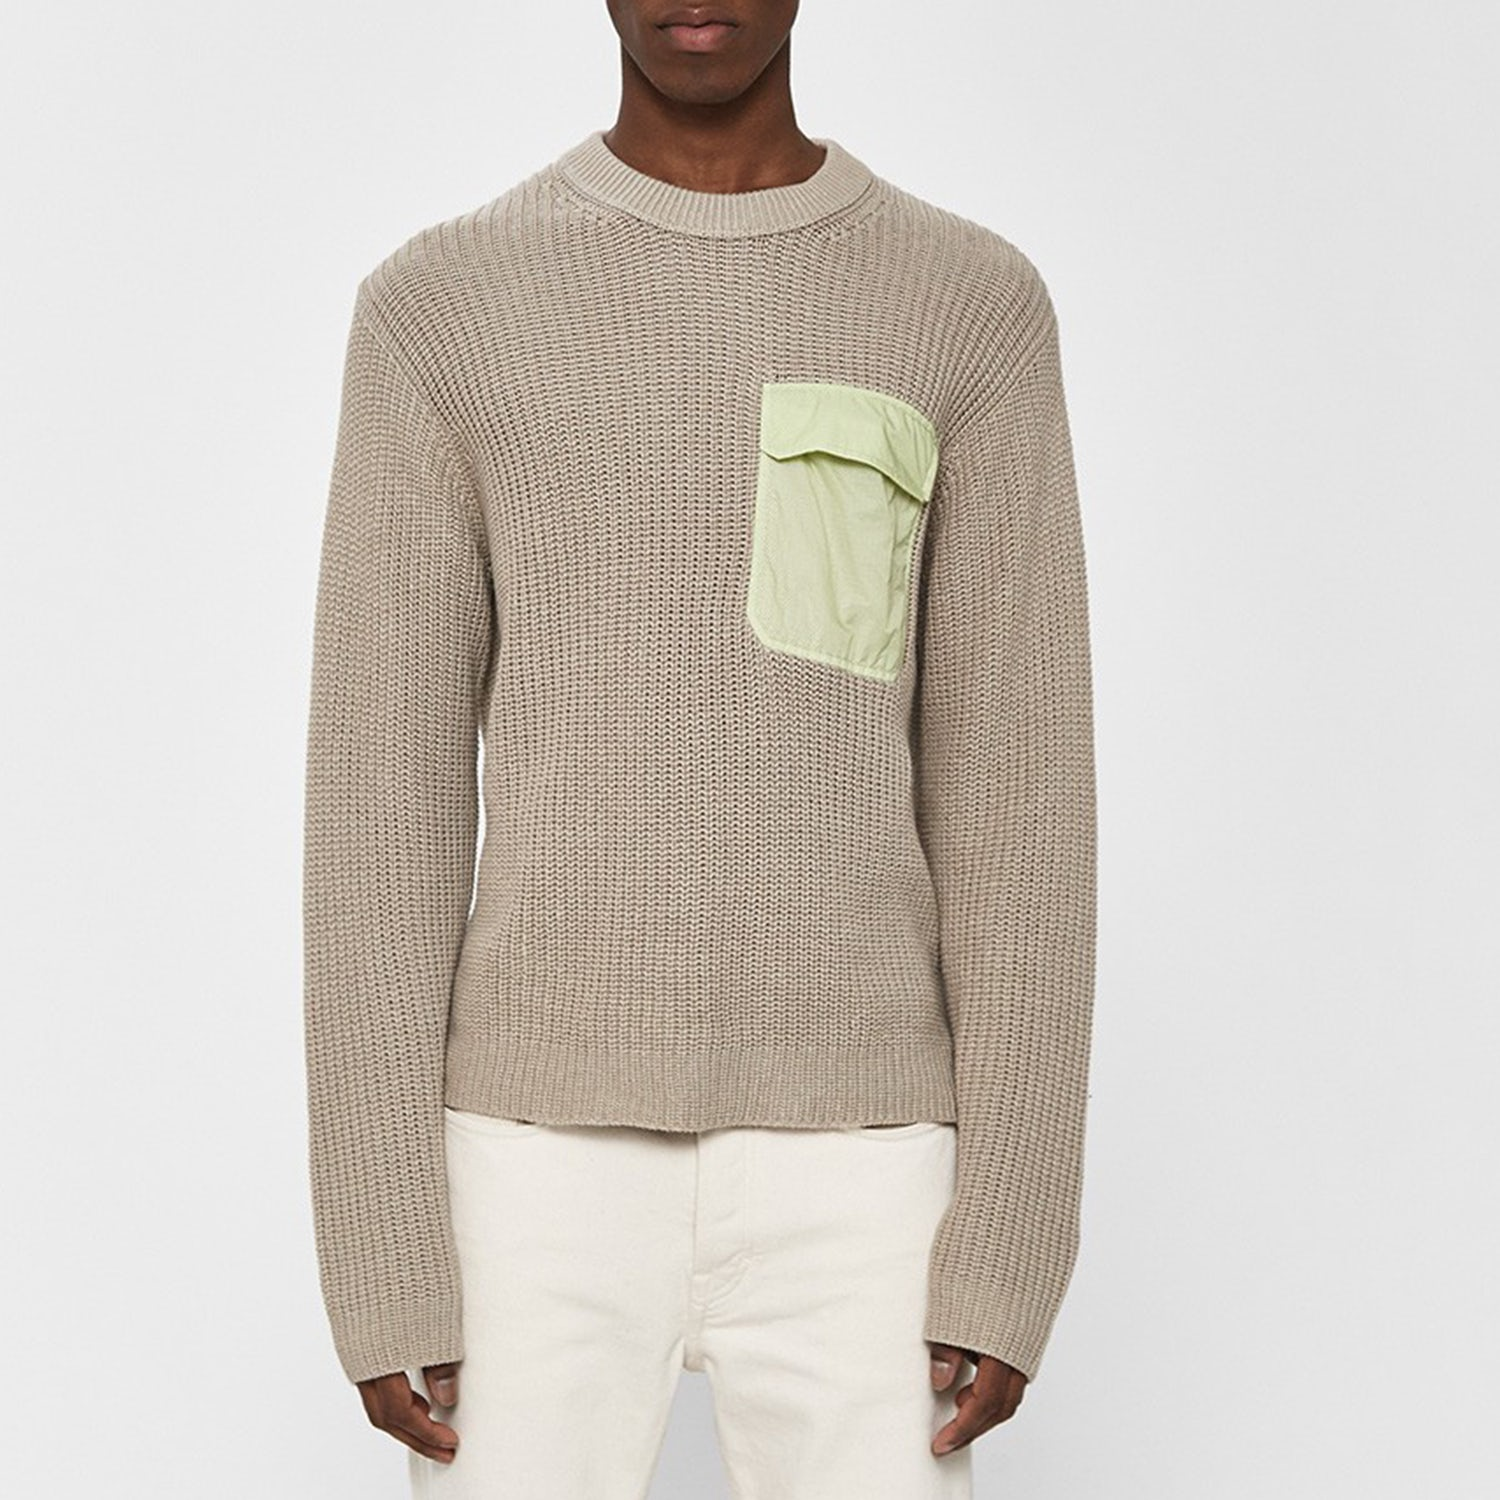 acne studio sweater